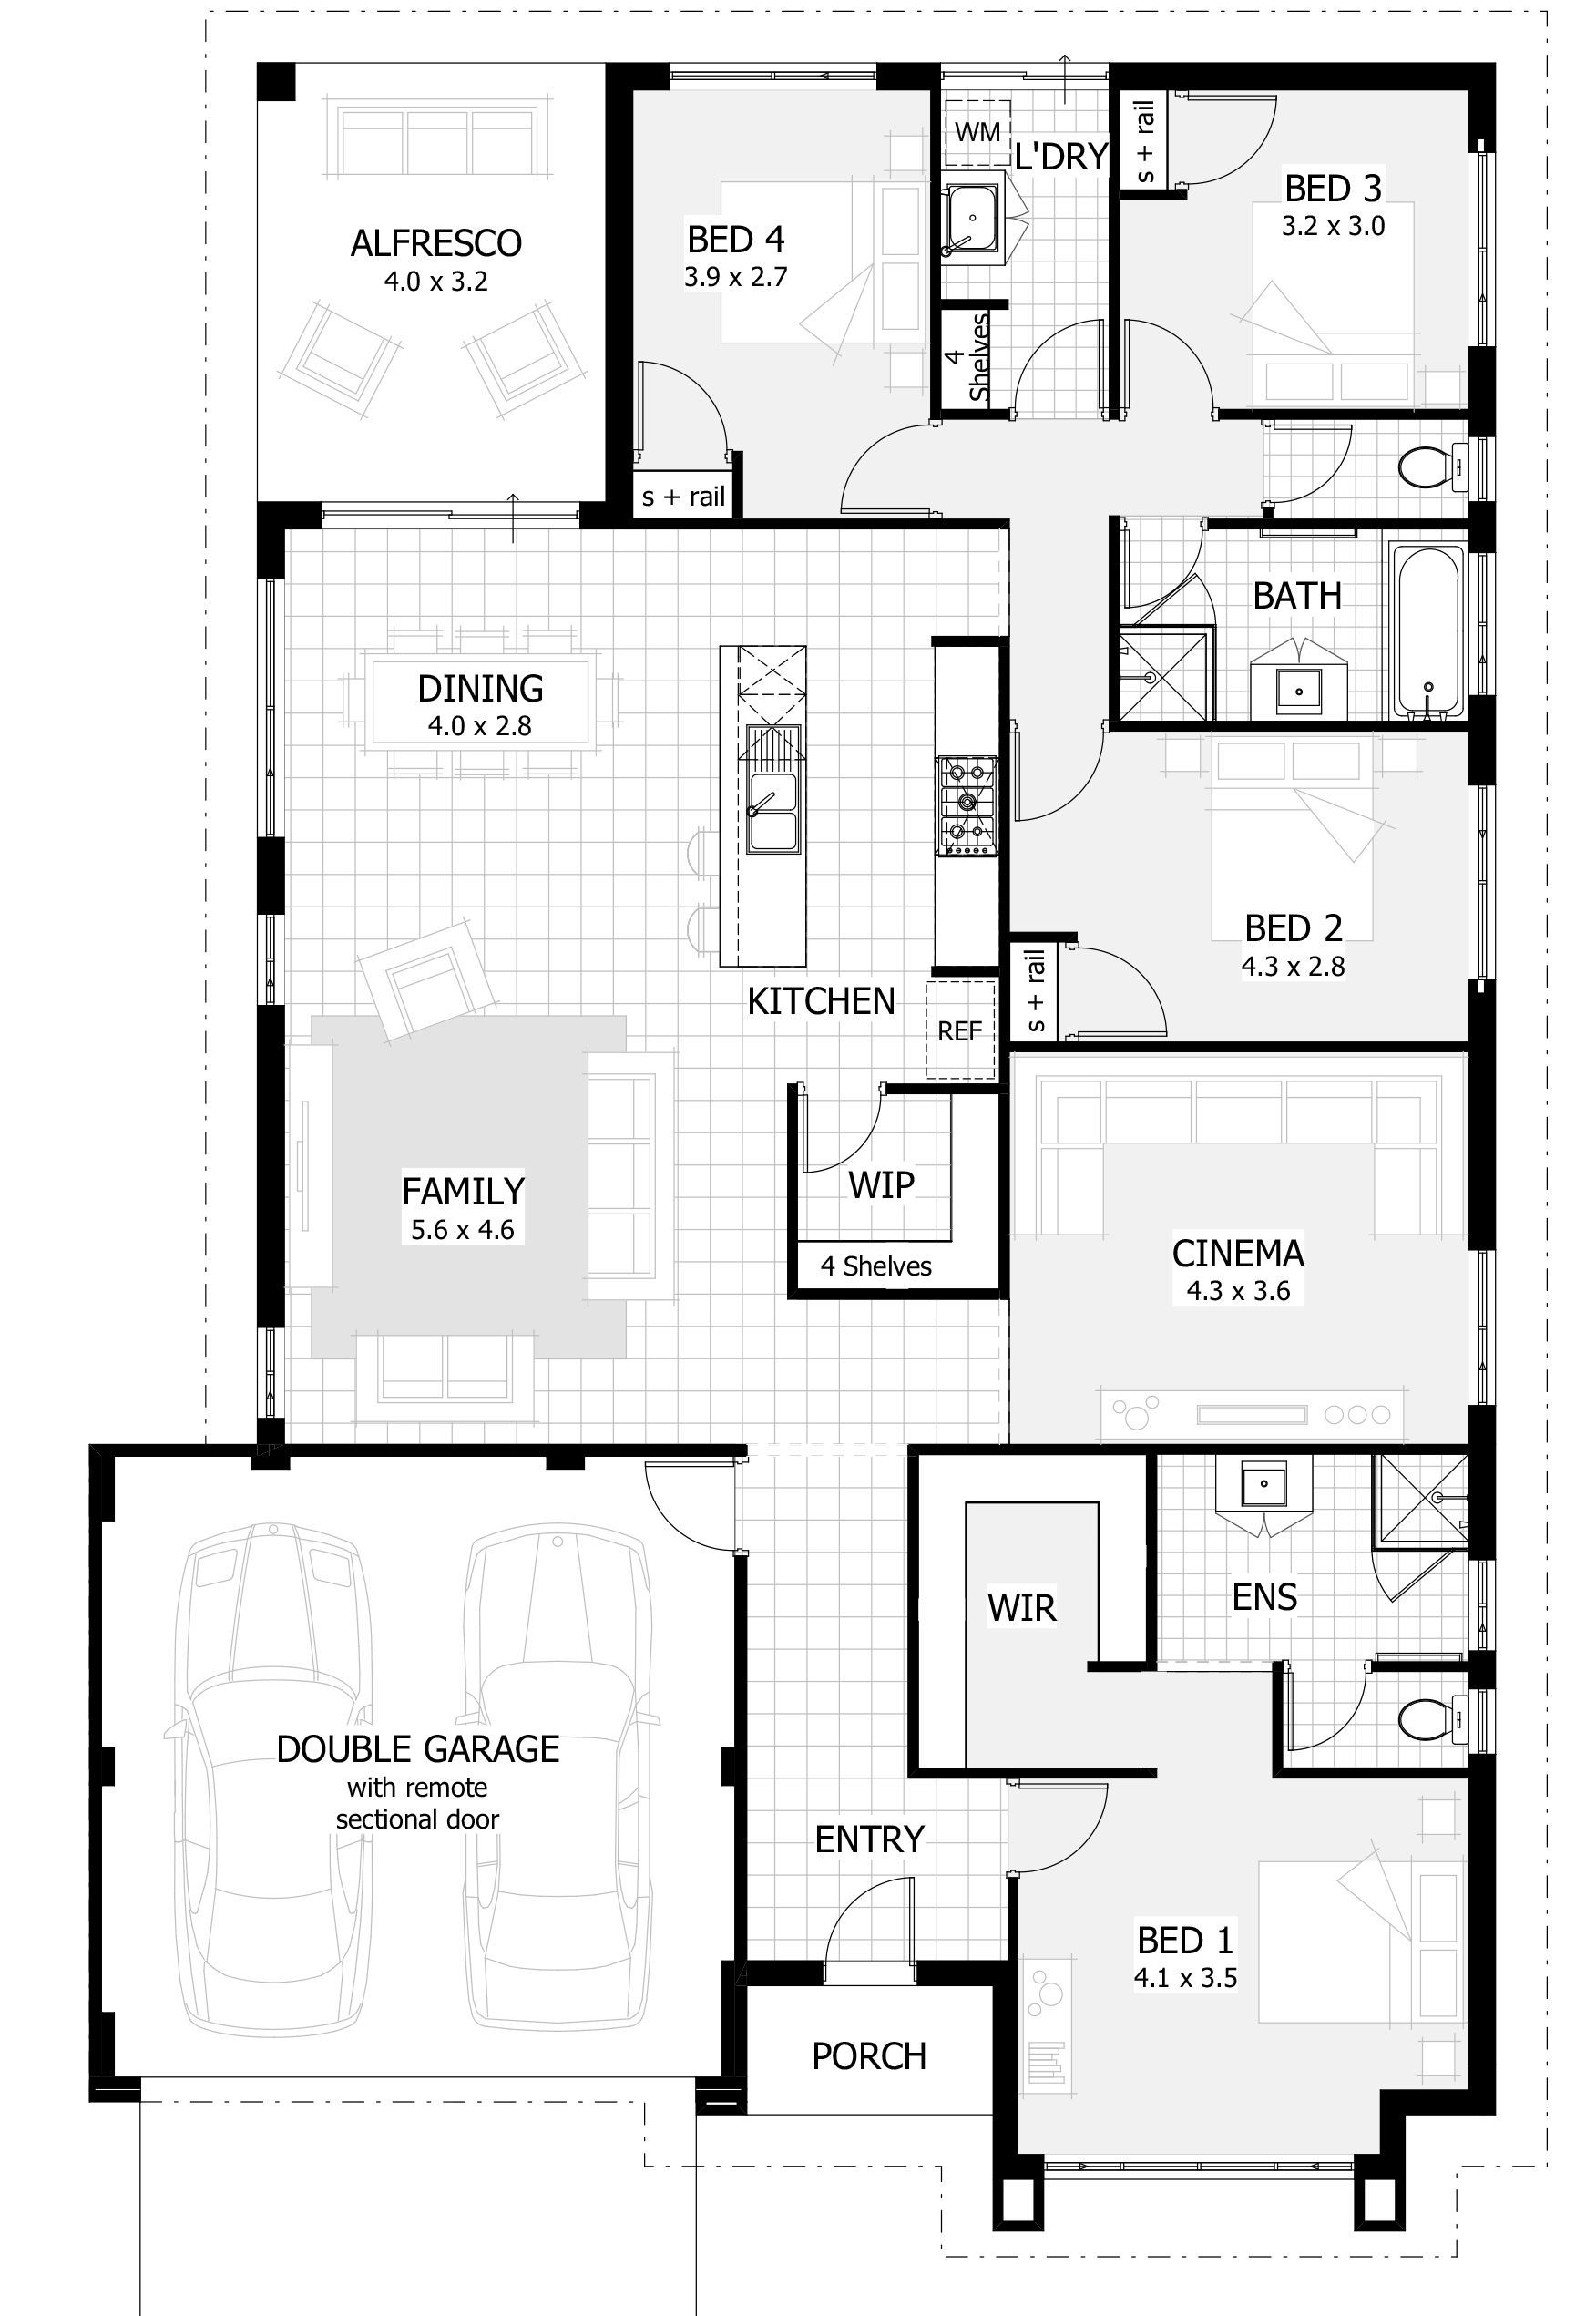 Perfect Contemporary House Floor Plans Australia And Review In 2020 Single Storey House Plans House Plans Australia Bedroom House Plans